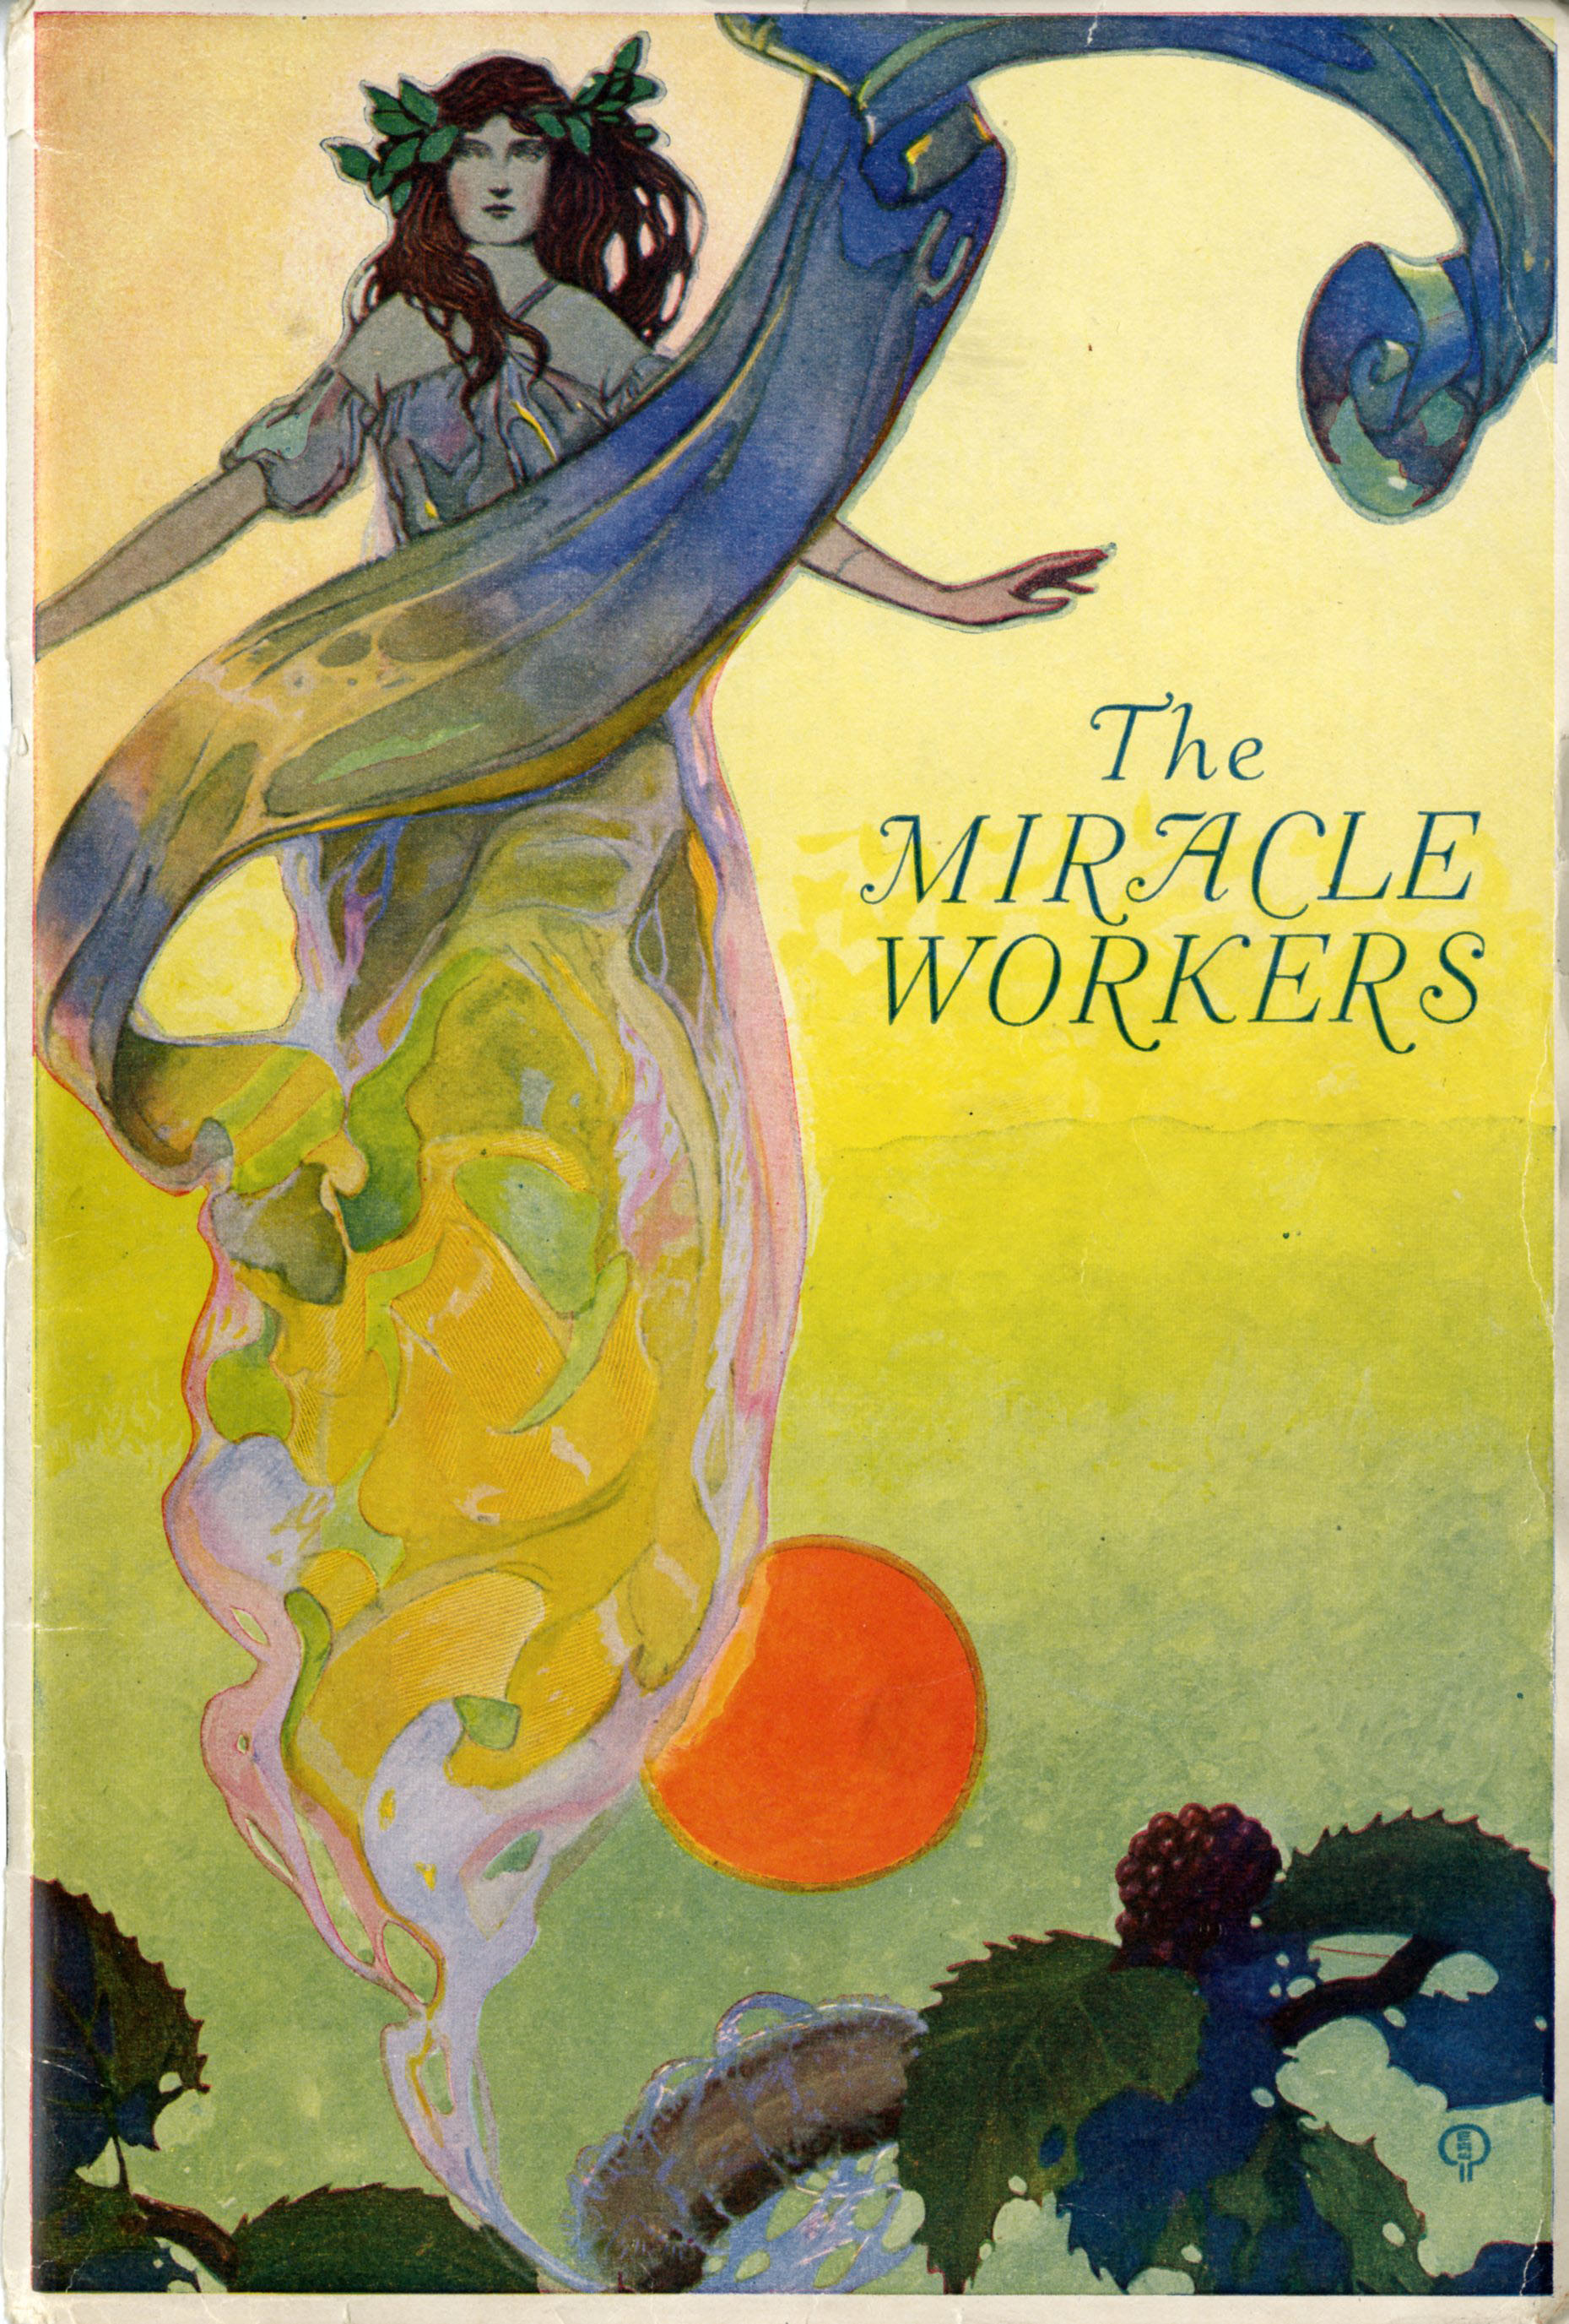 Cover of The Miracle Workers, a worker recruitment publication from the Cheney Brothers Silk Manufacturing Company